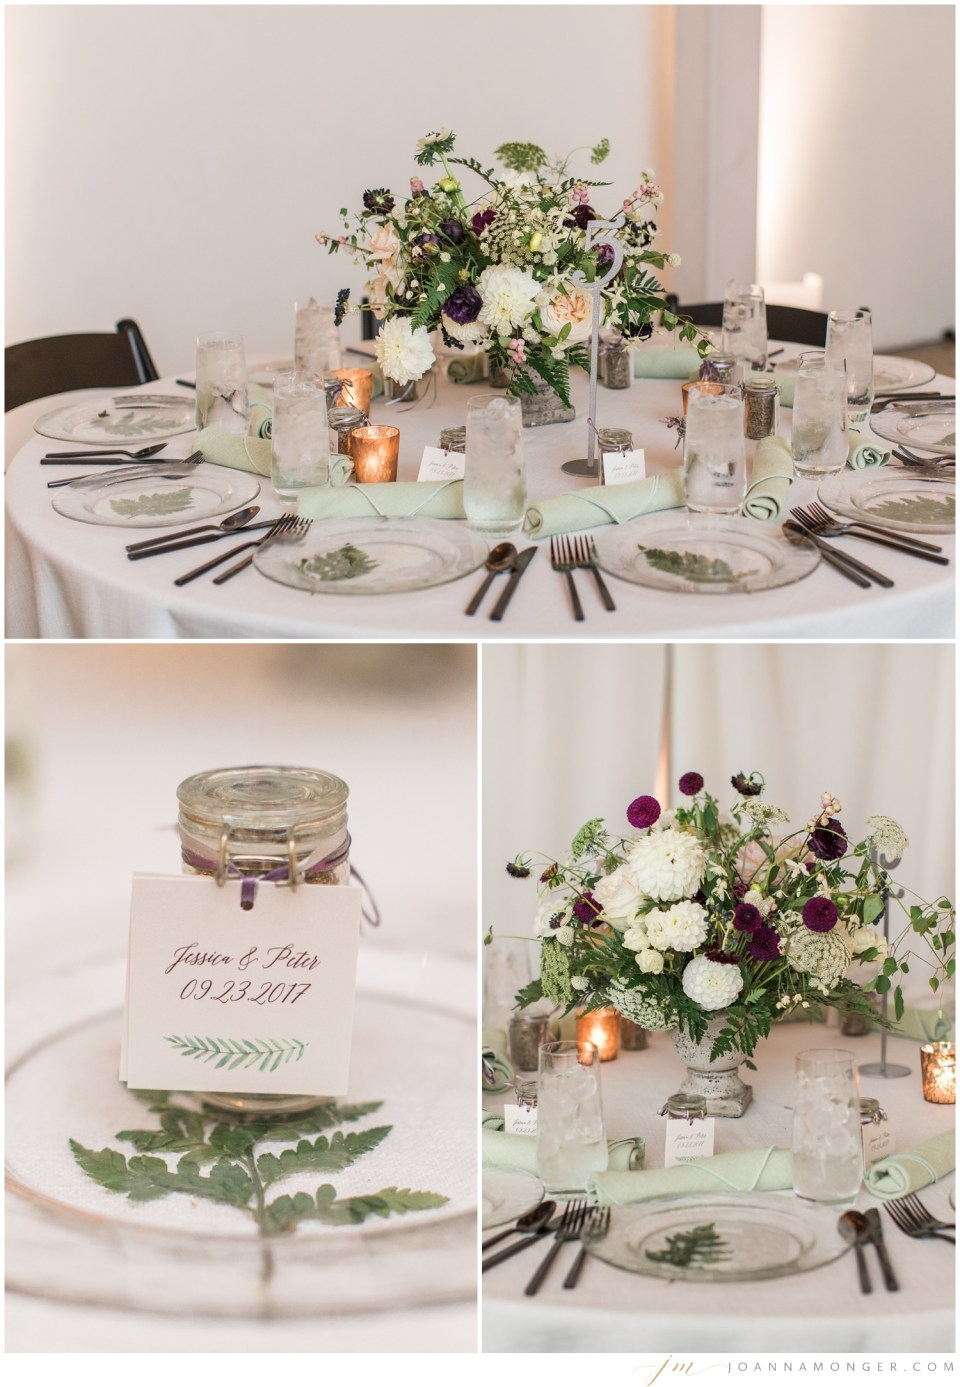 Photos of the tablescape of an elegant wedding at Canvas Event Space in SODO, Seattle, WA. | Joanna Monger Photography | Snohomish & Seattle Wedding Photographer